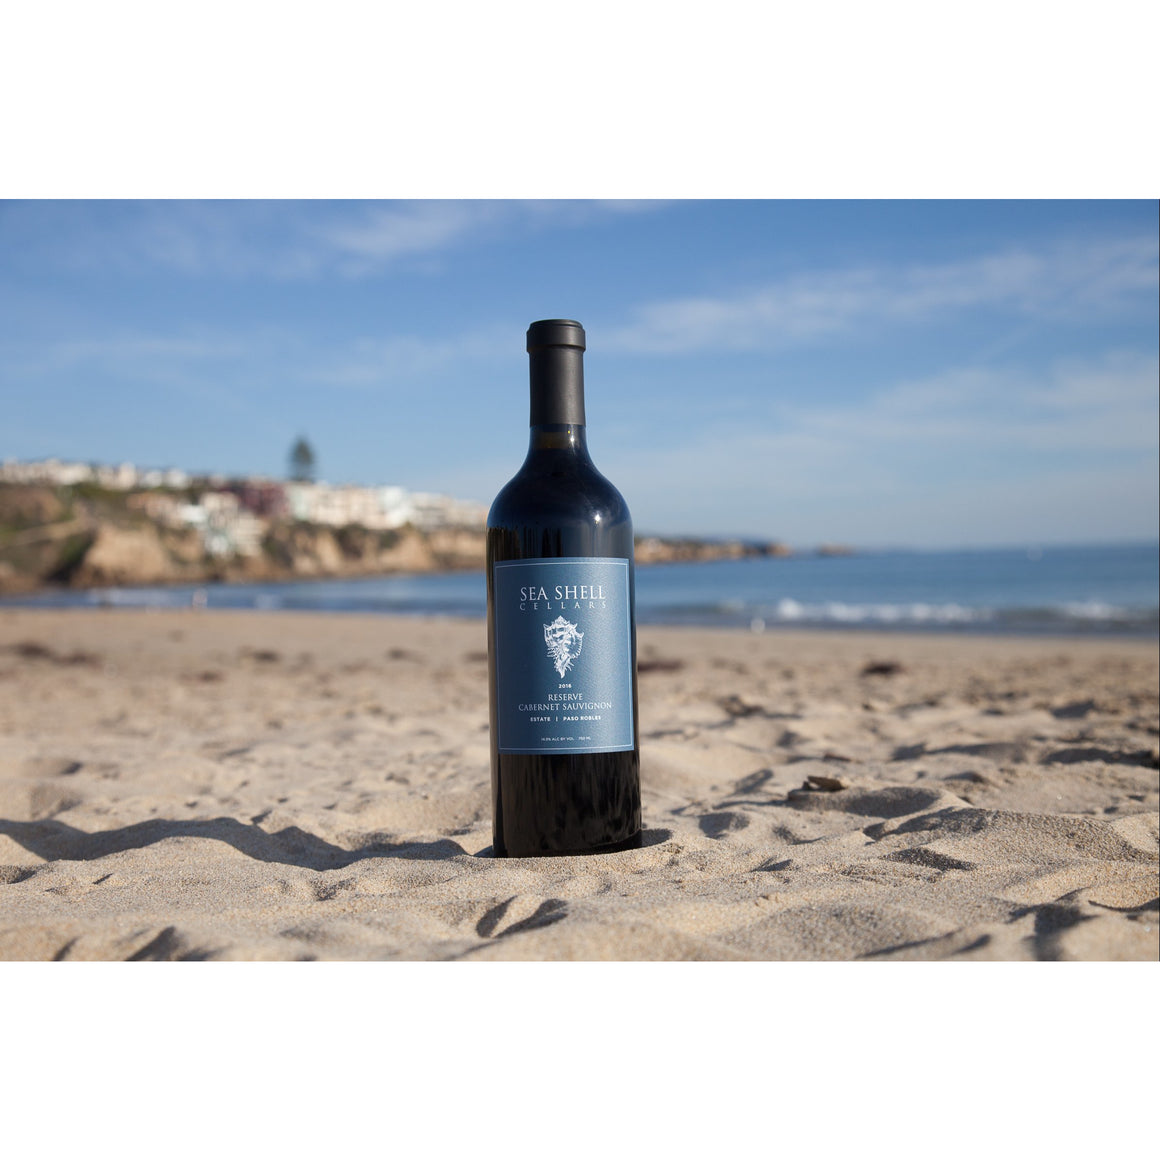 Sea Shell Cellars 2016 Reserve Cabernet Sauvignon